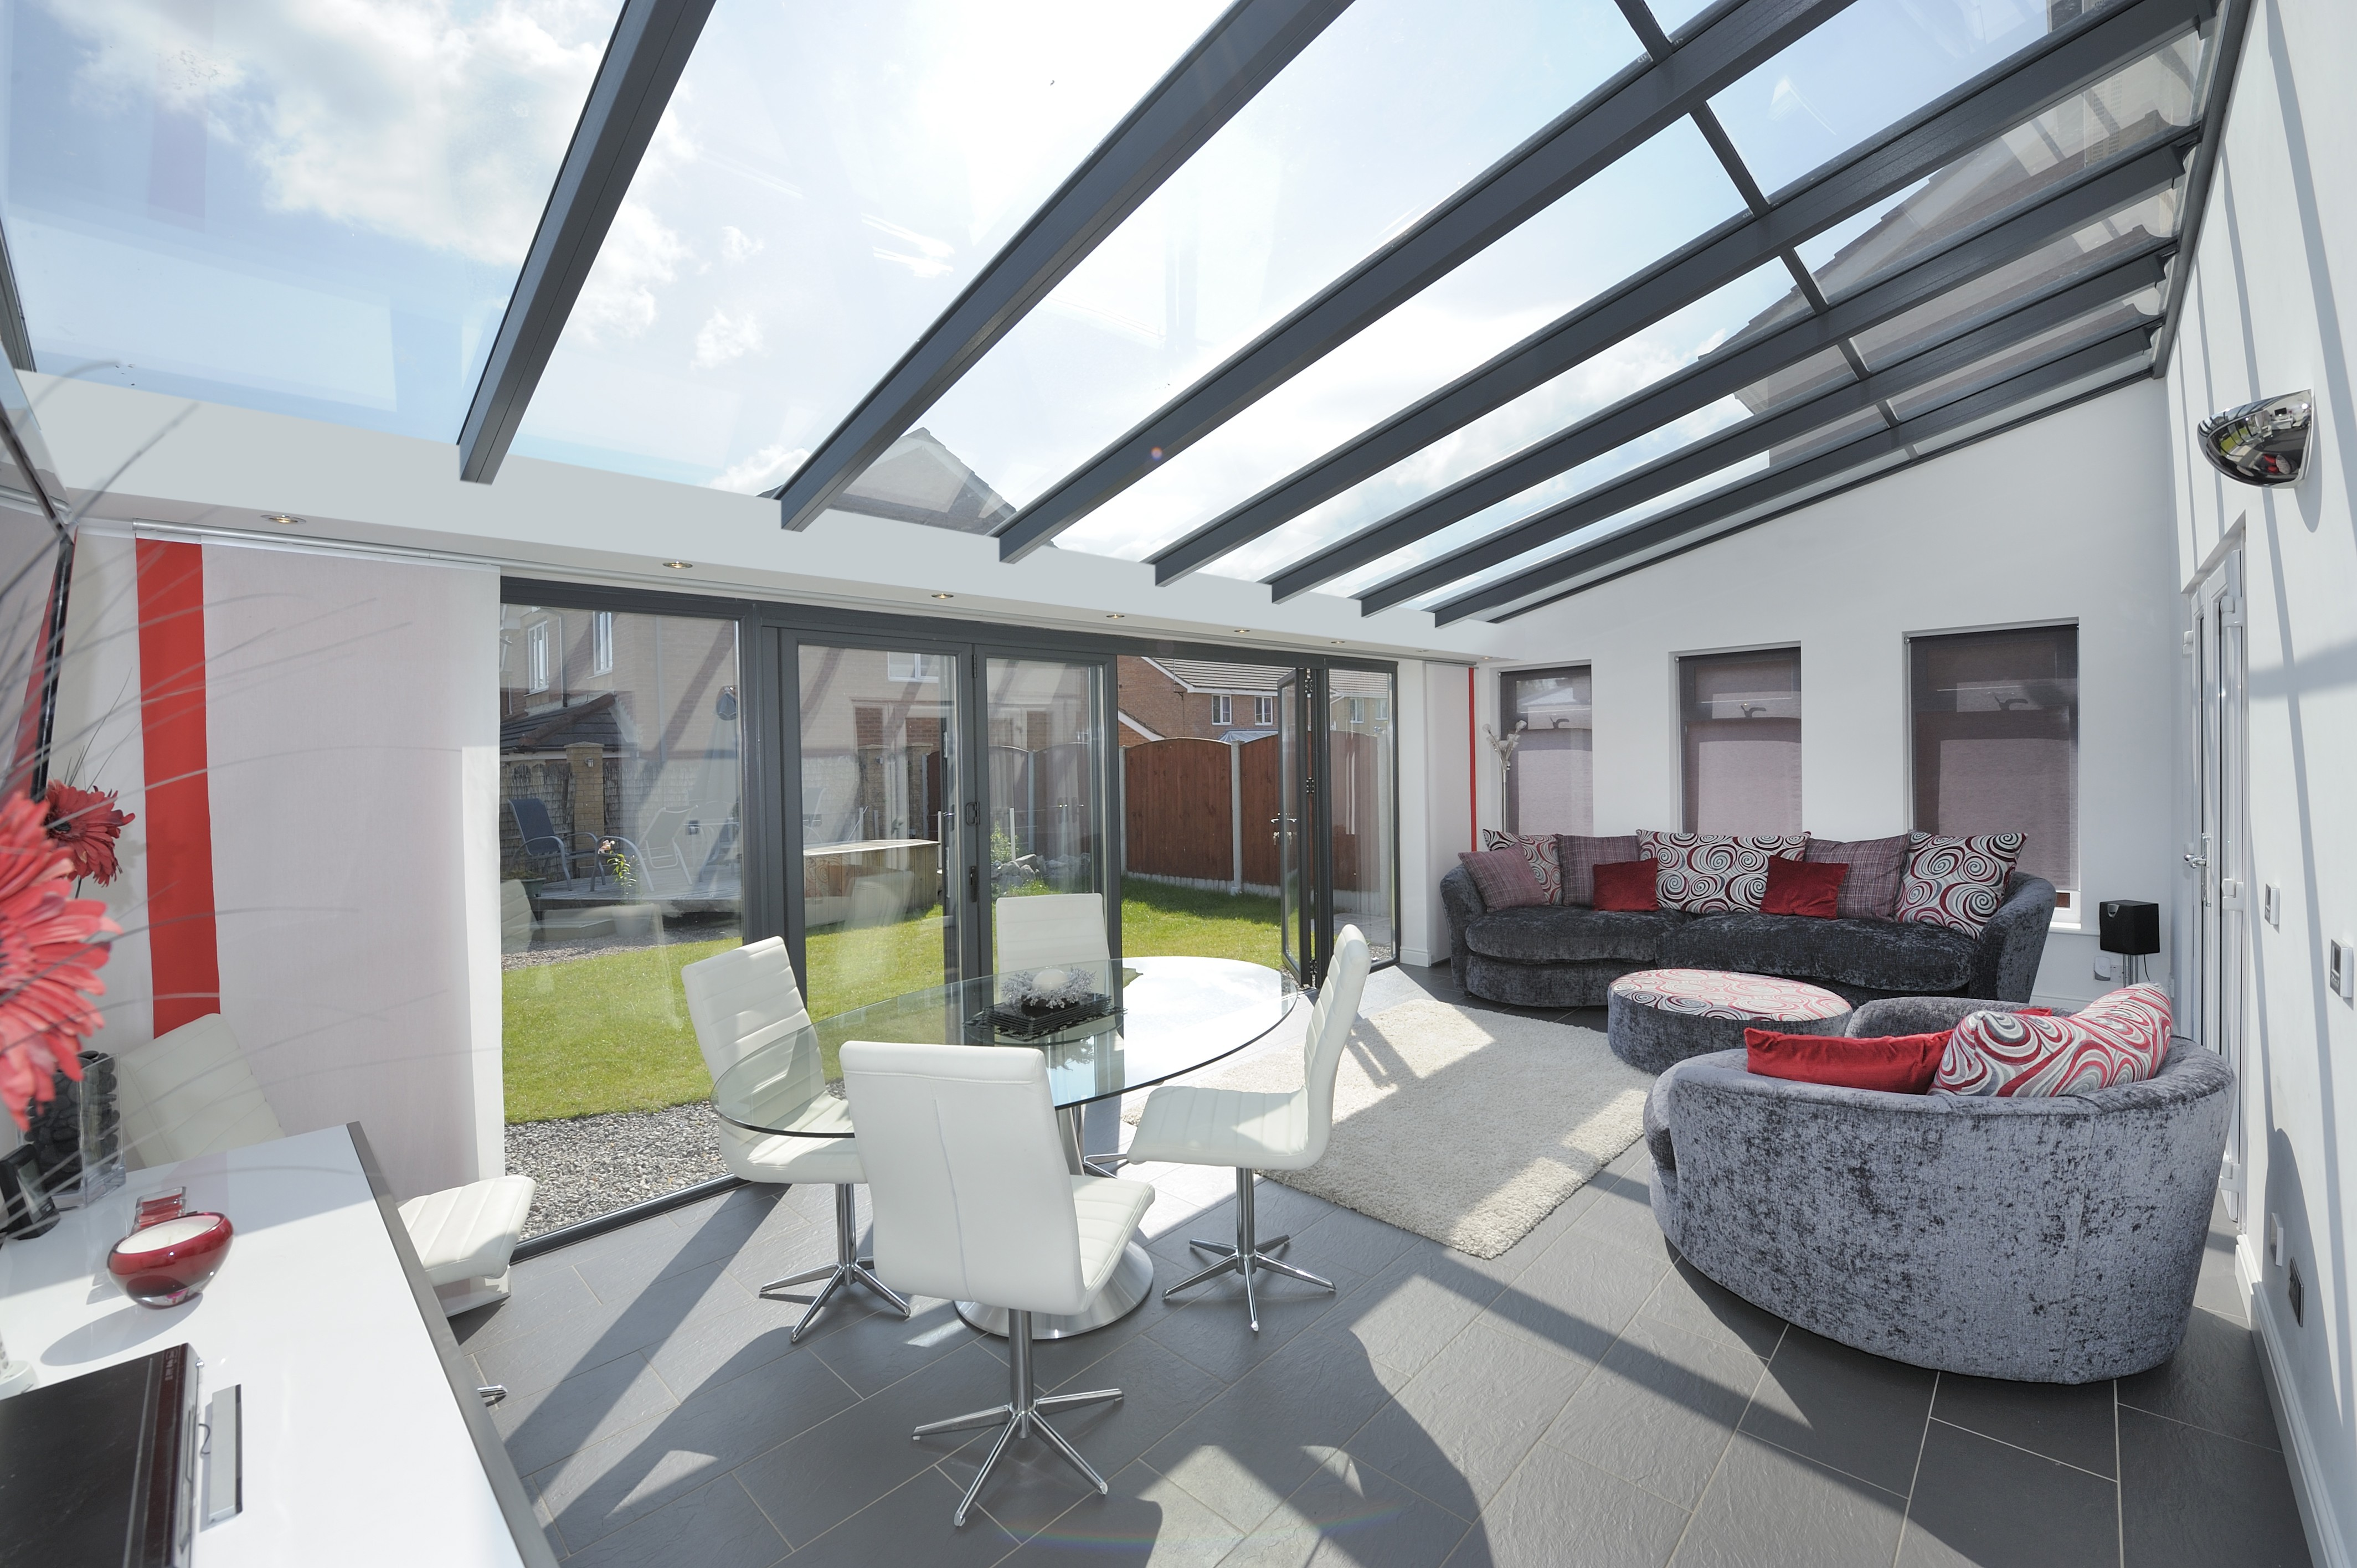 Glass Roof Extension Lean To Conservatories Lean To Conservatory Designs Ultraframe